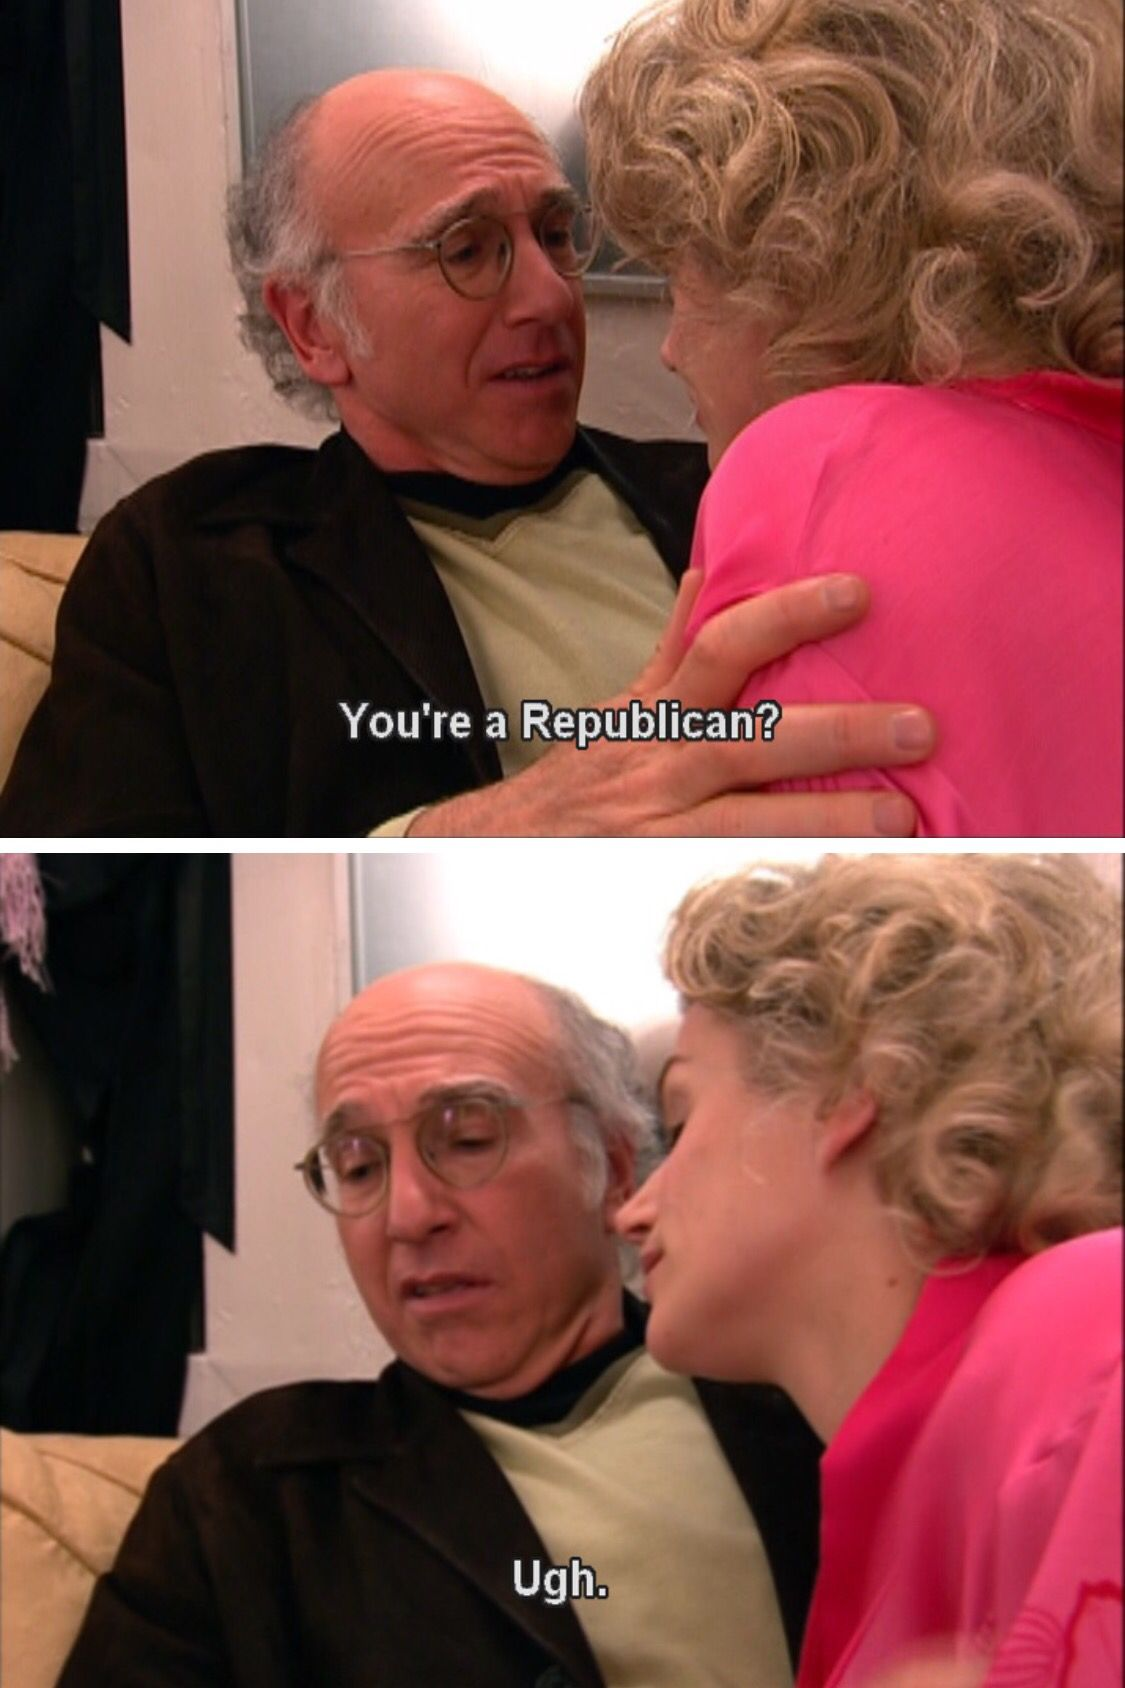 Pin By Asiana On This Is Life Curb Your Enthusiasm Larry David Larry David Quotes